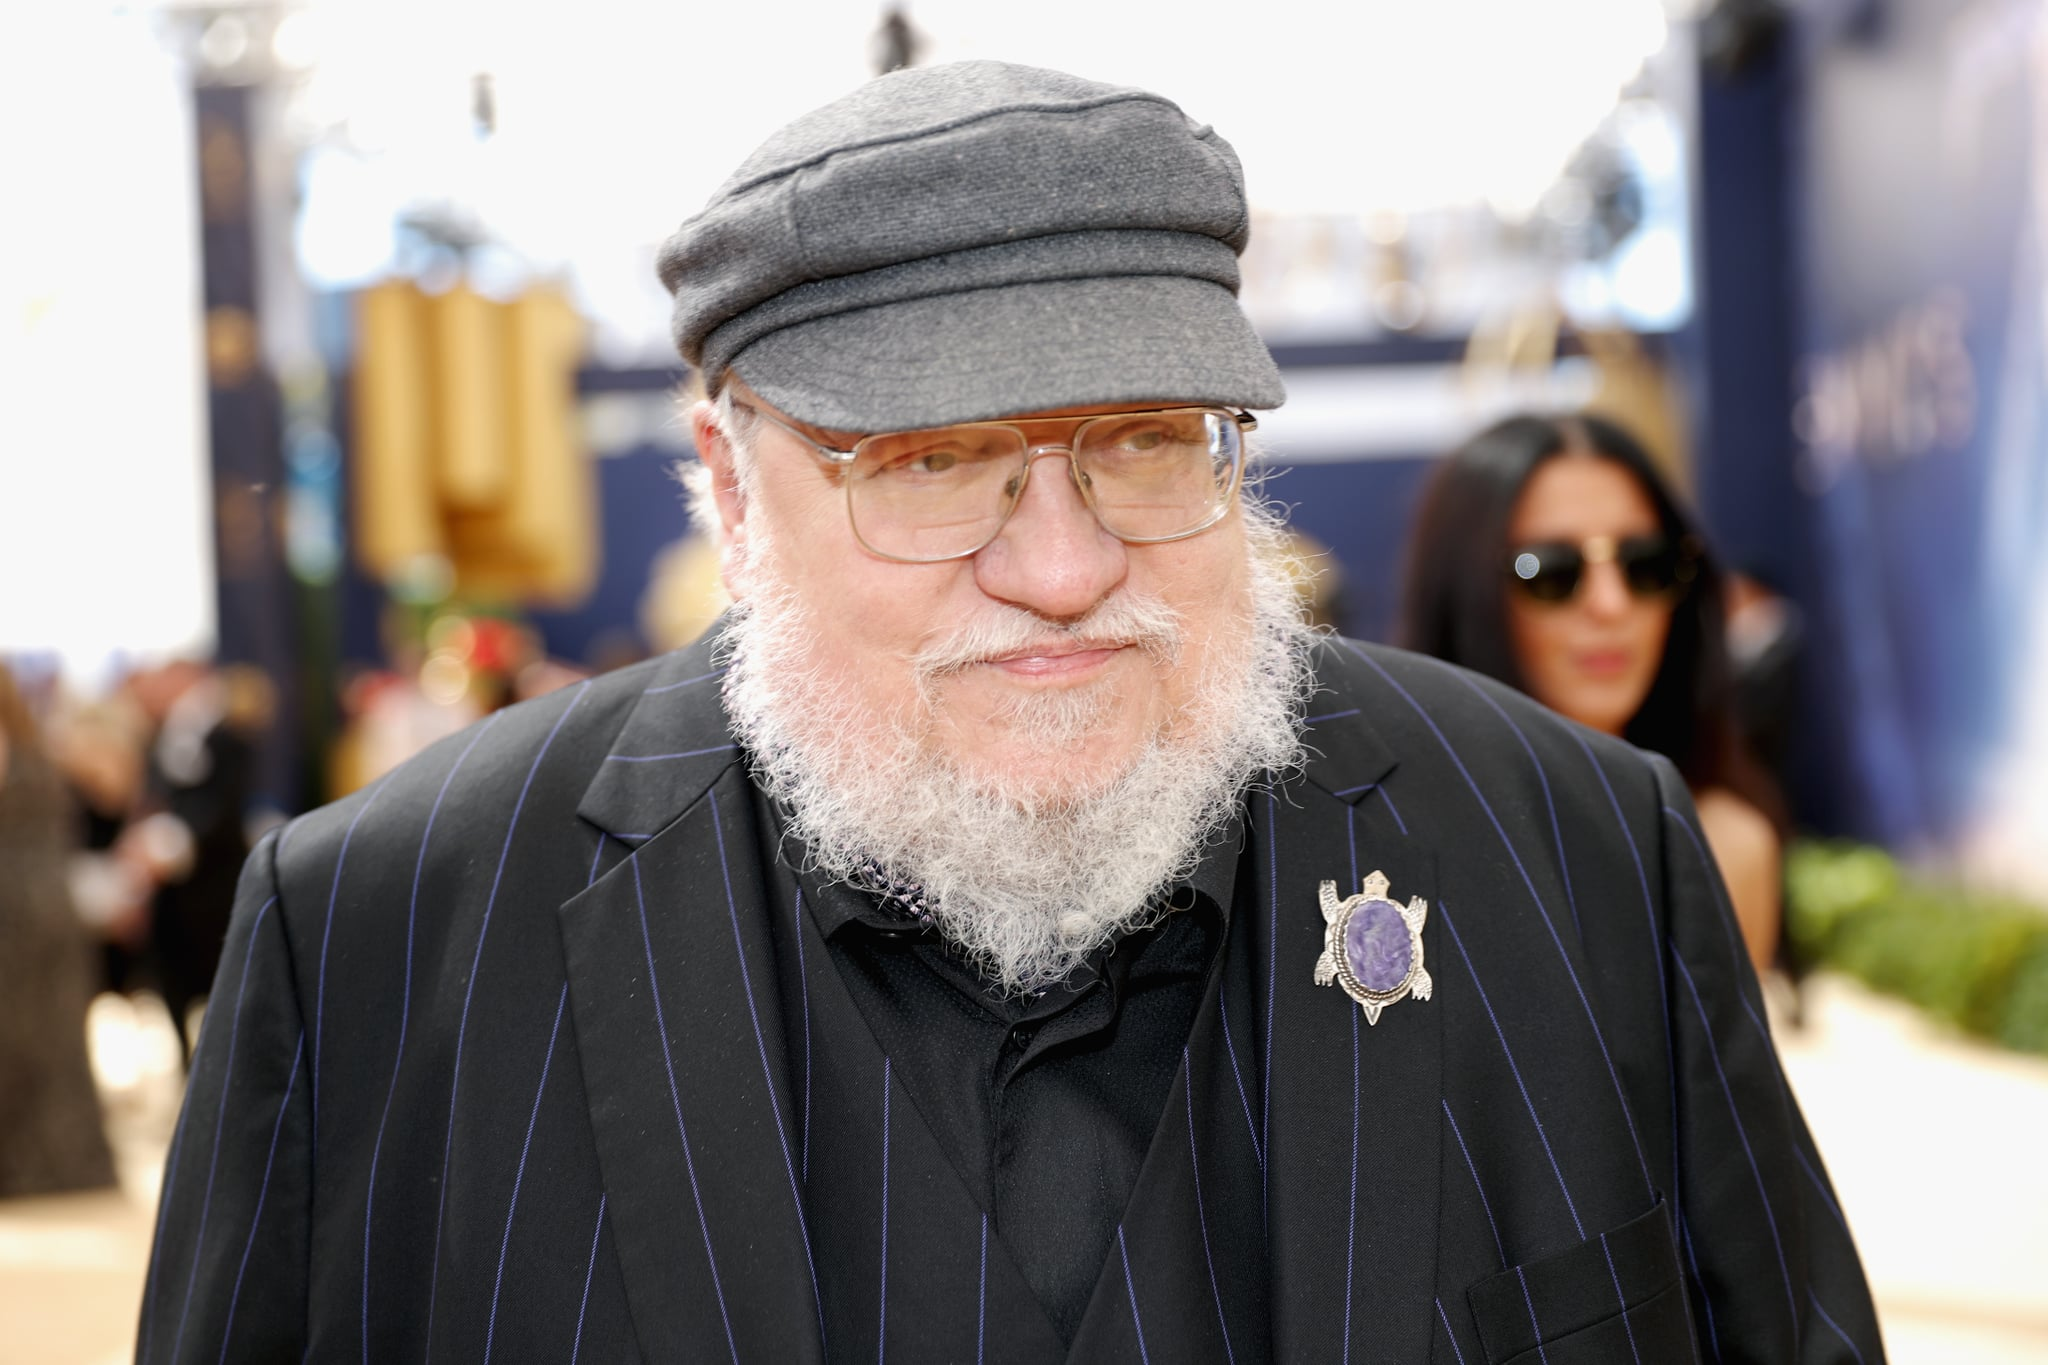 LOS ANGELES, CA - SEPTEMBER 17:  Writer George R. R. Martin attends the 70th Annual Primetime Emmy Awards at Microsoft Theatre on September 17, 2018 in Los Angeles, California.  (Photo by Rich Polk/Getty Images for IMDb)